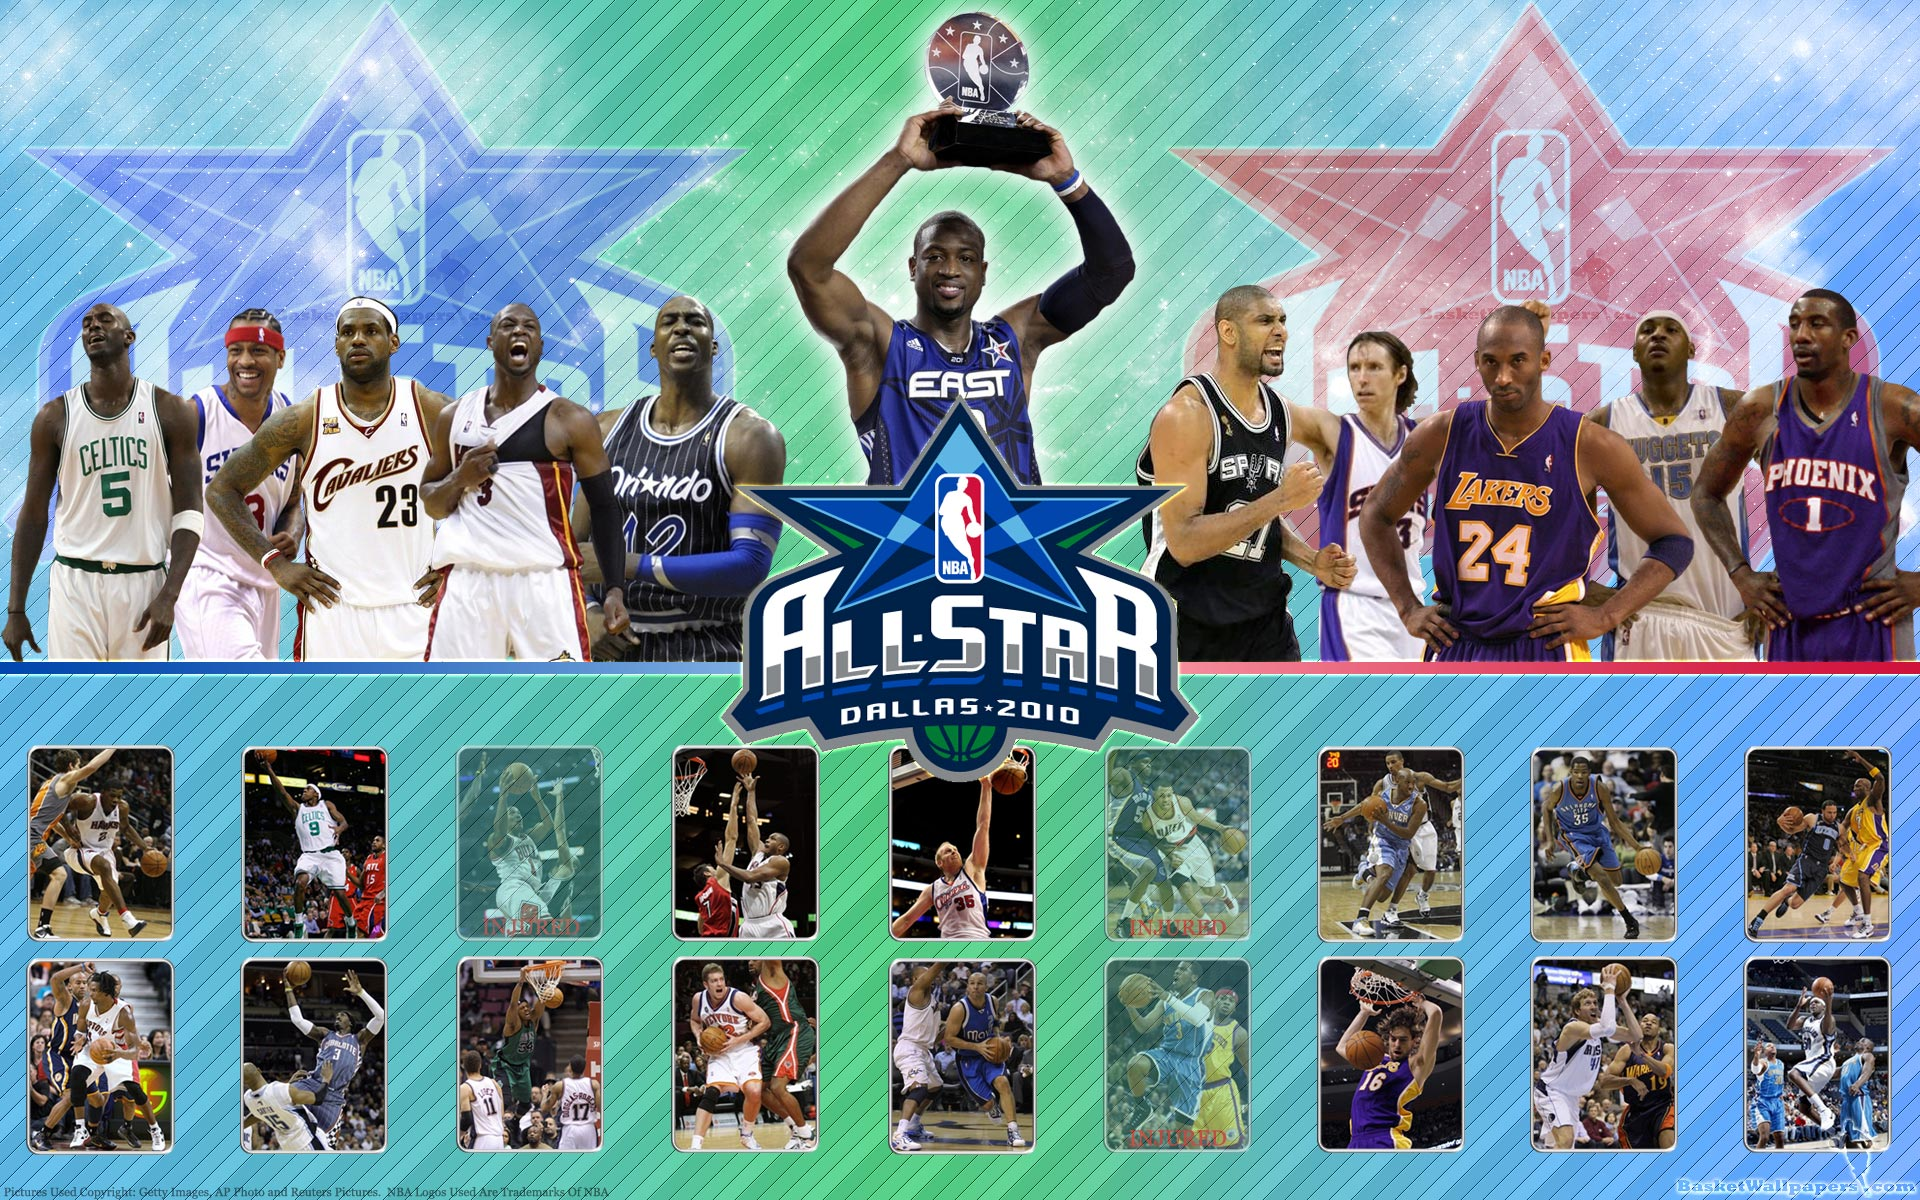 NBA All Star 2010 Rosters